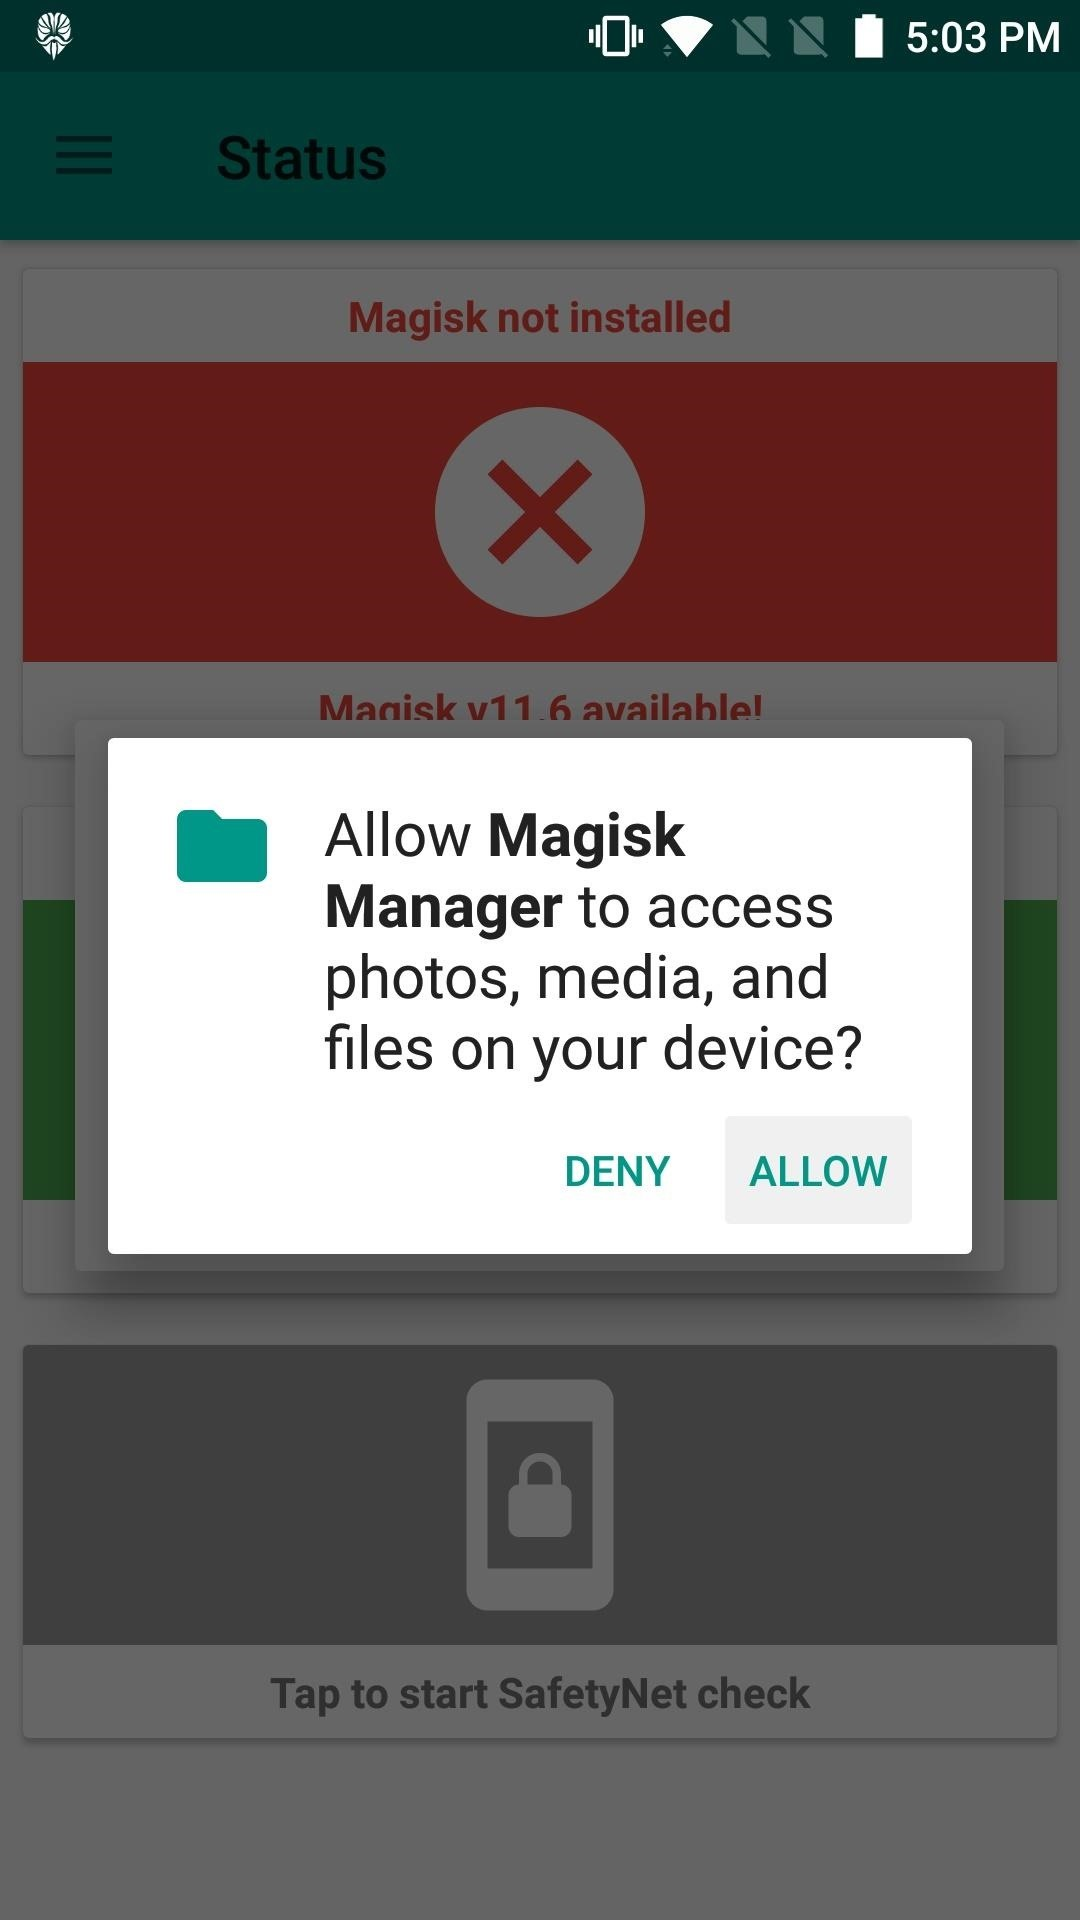 Magisk 101: How to Install Magisk on Your Rooted Android Device